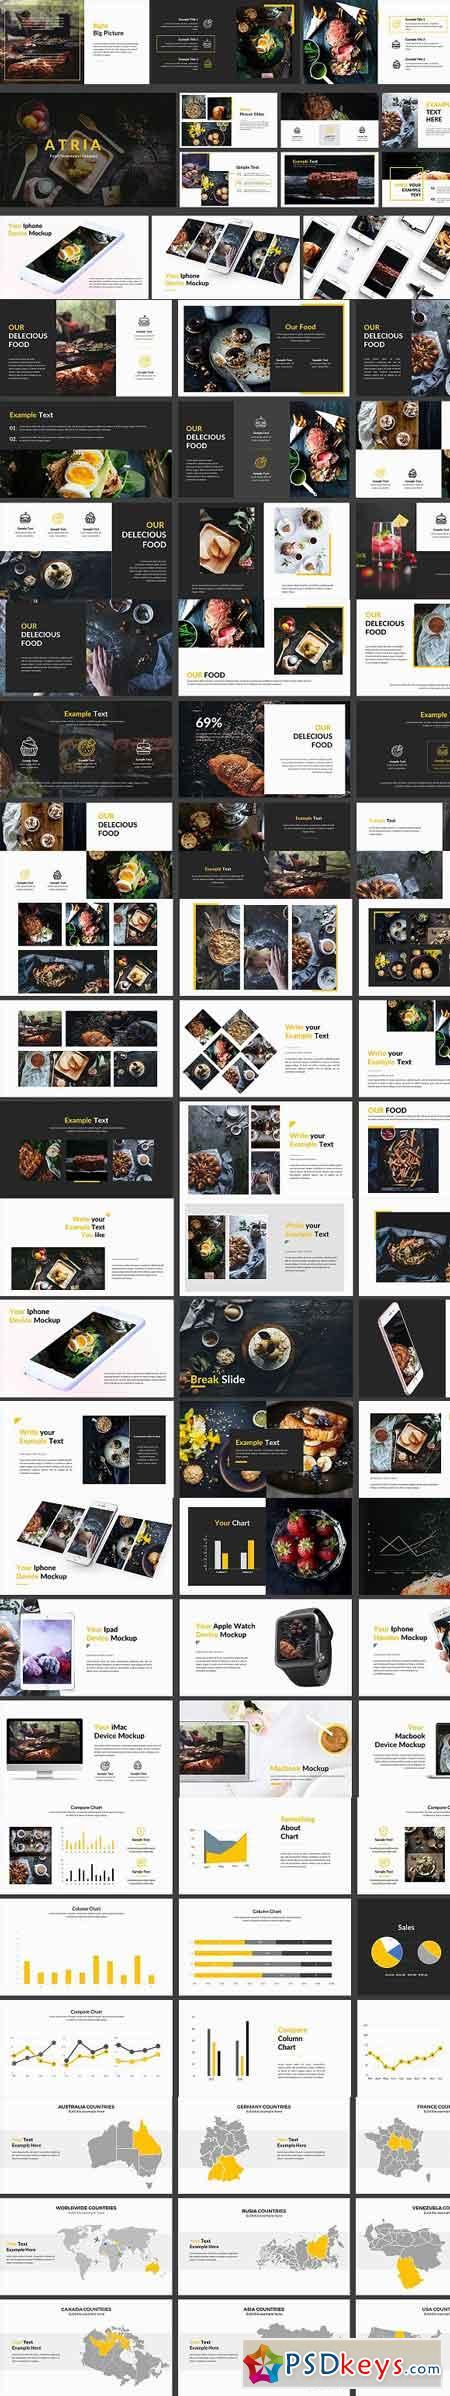 Food Powerpoint Template 1252962